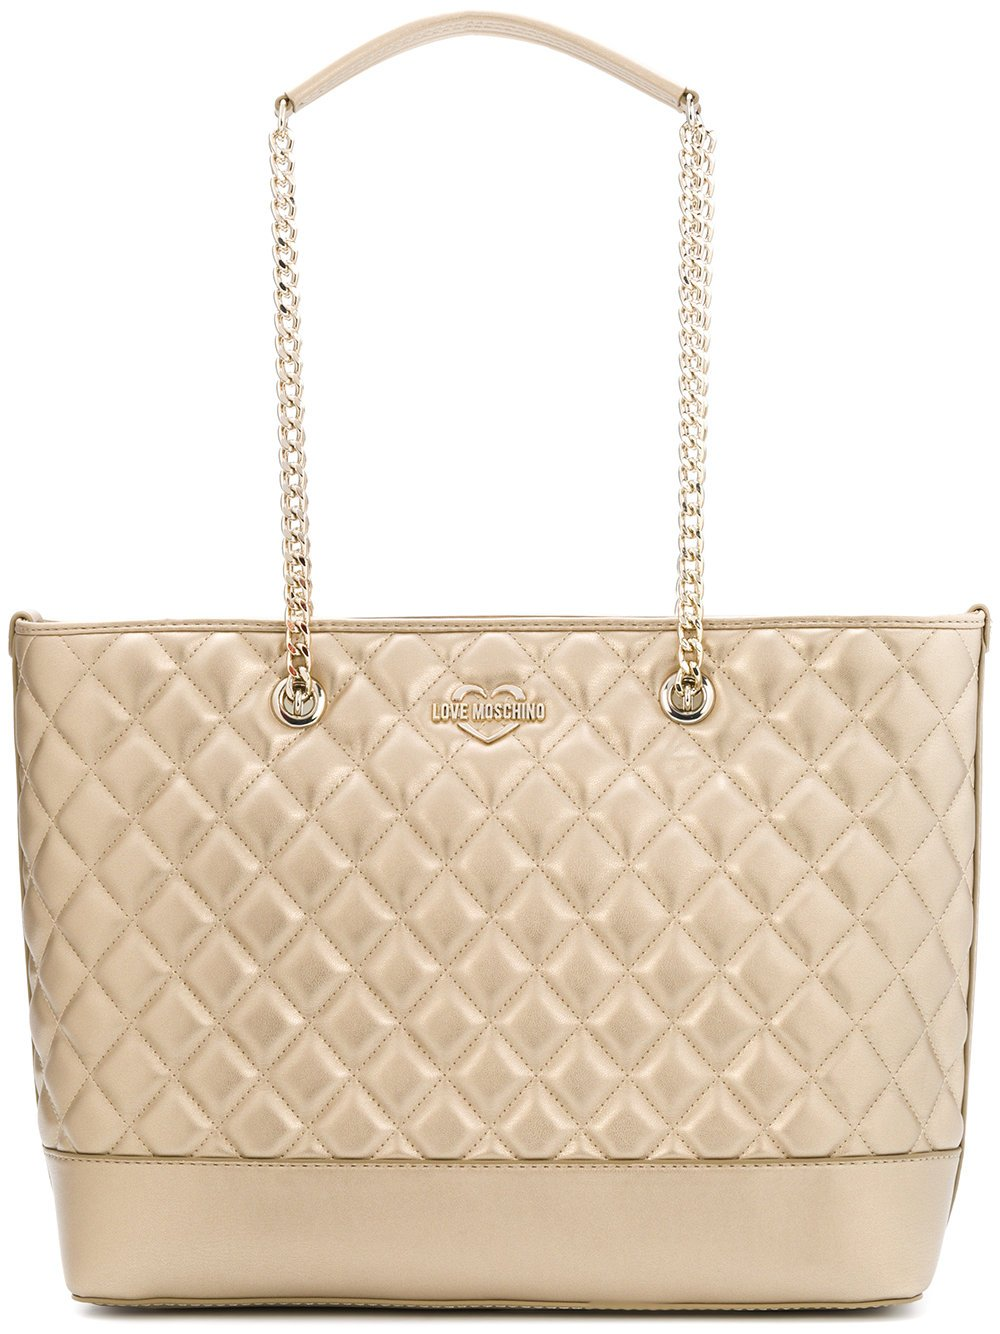 LOVE MOSCHINO Diamond Quilted Logo Shoulder Tote Bag, Gold